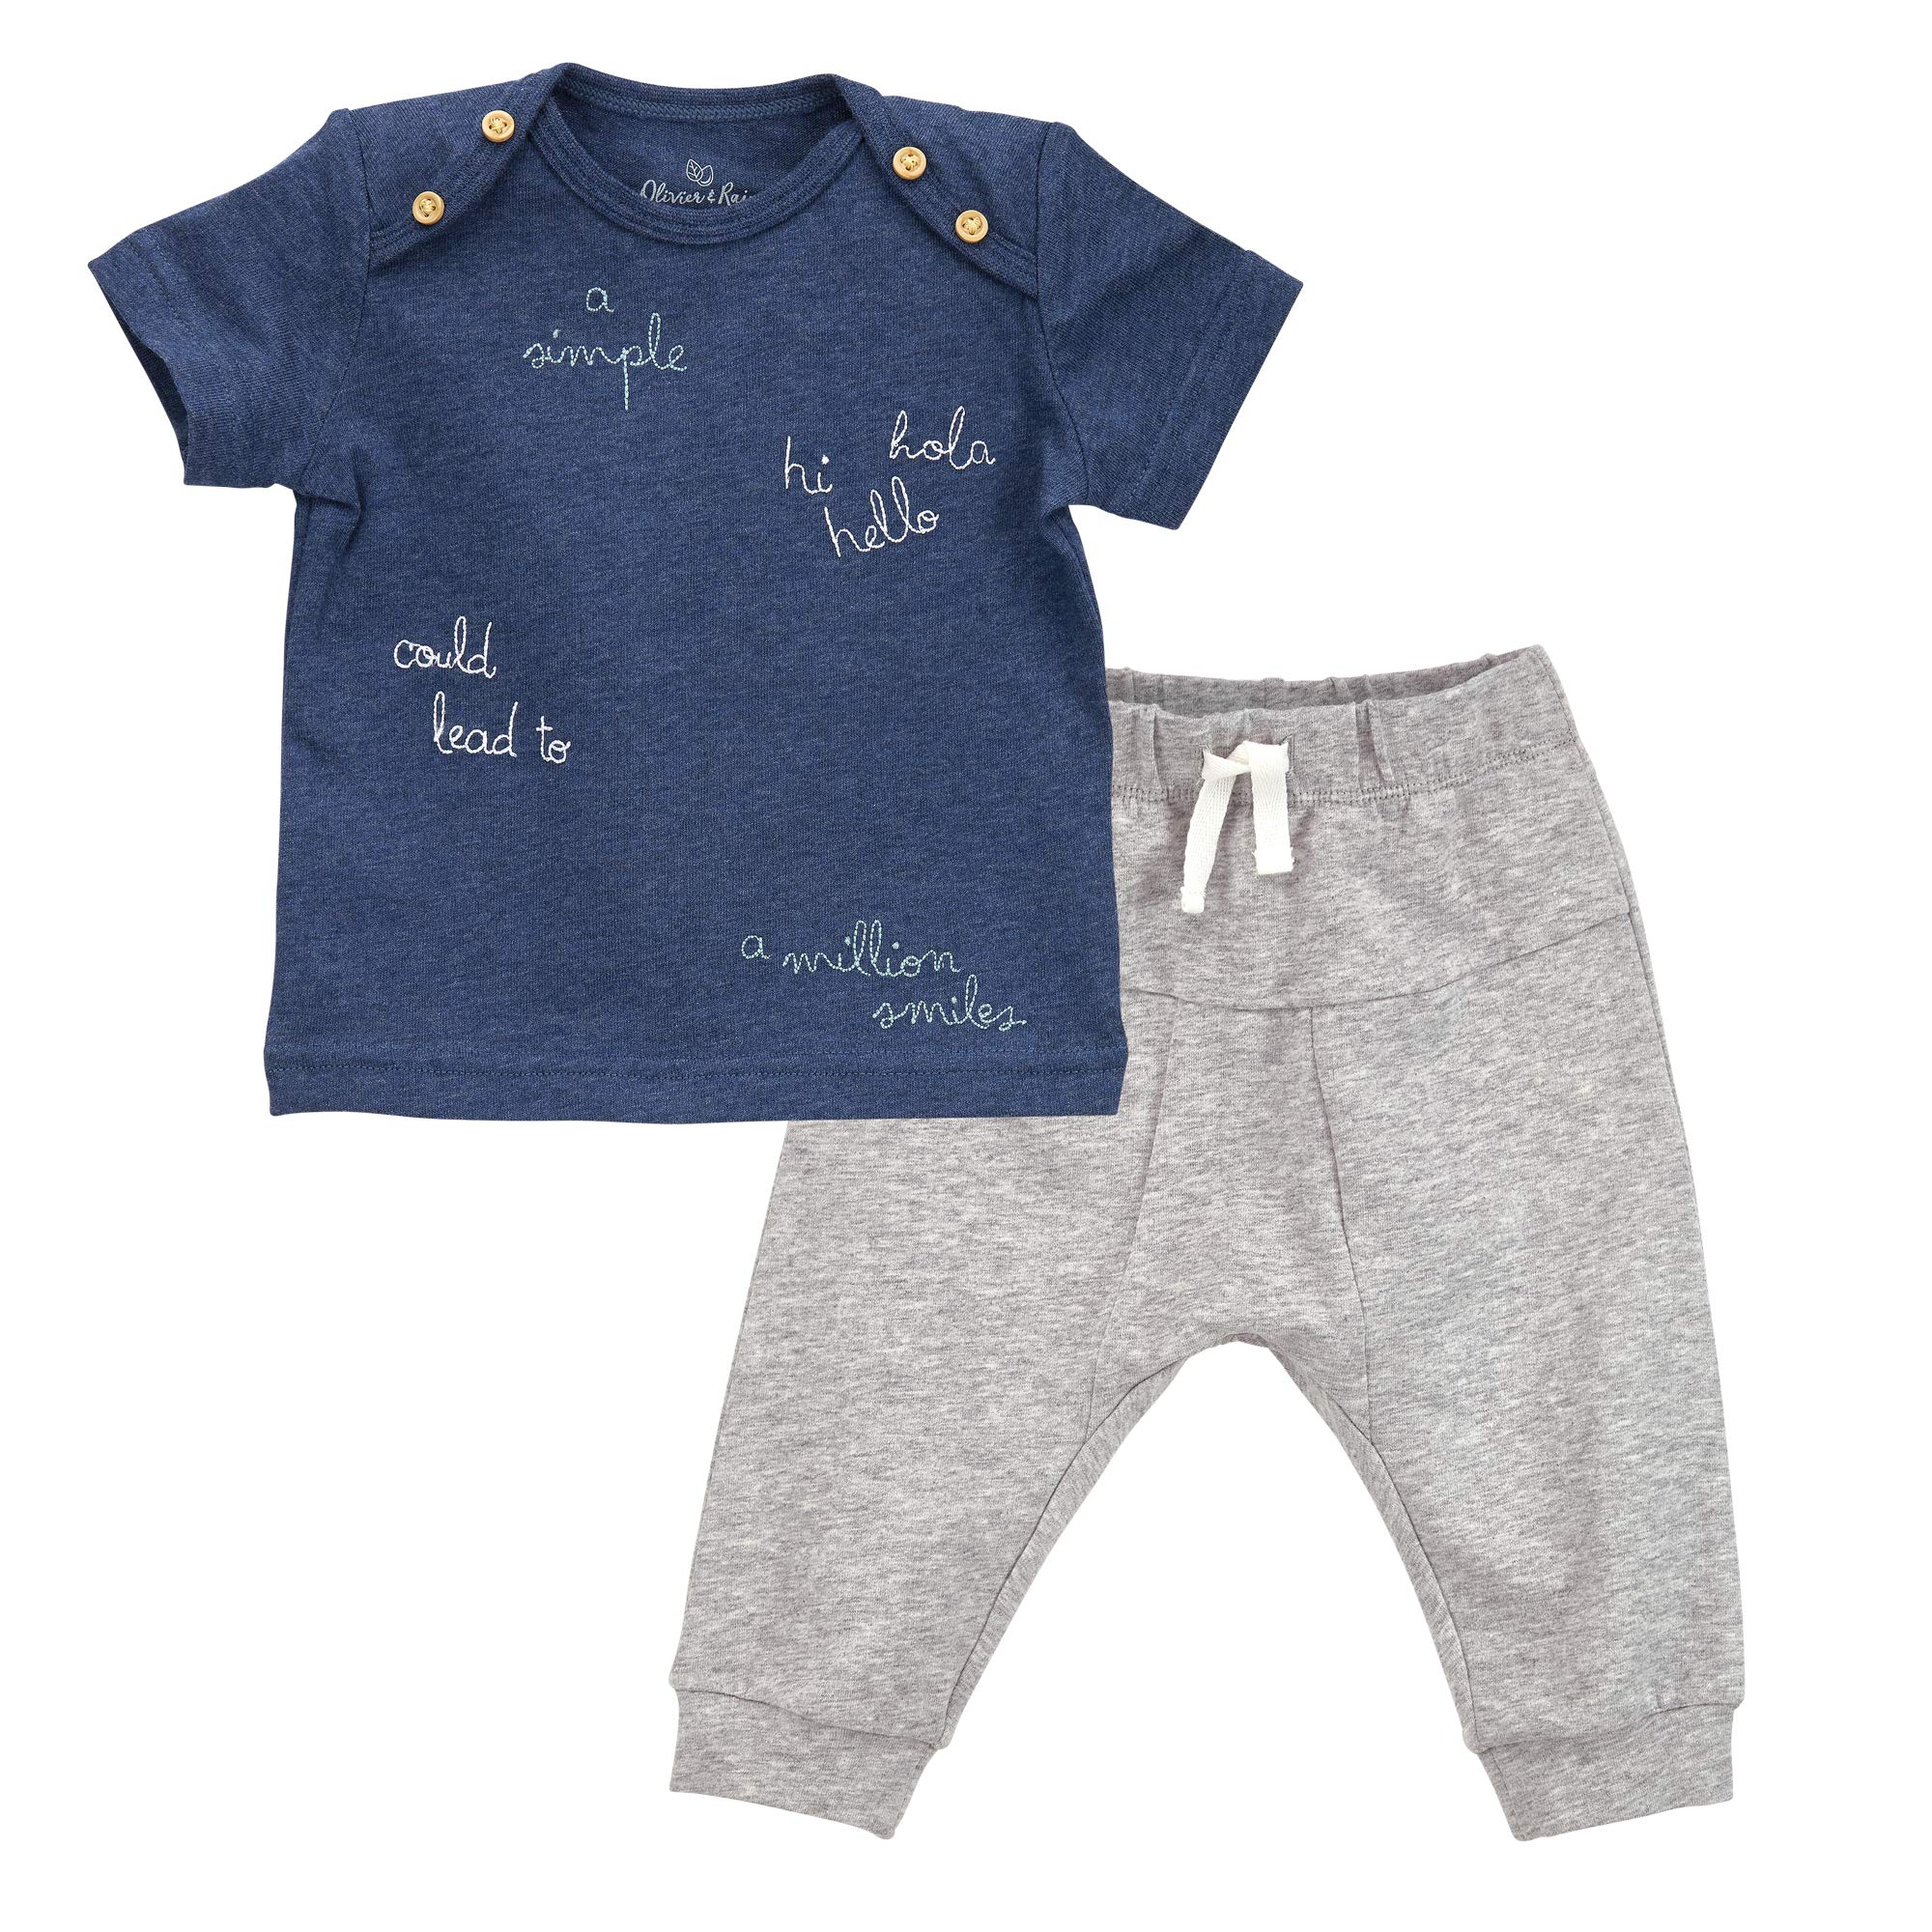 """Oliver & Rain - Organic """"Hello"""" Short Sleeve Tee and Jogger Pants Outfit Set, Navy/Heather Gray, 18M"""